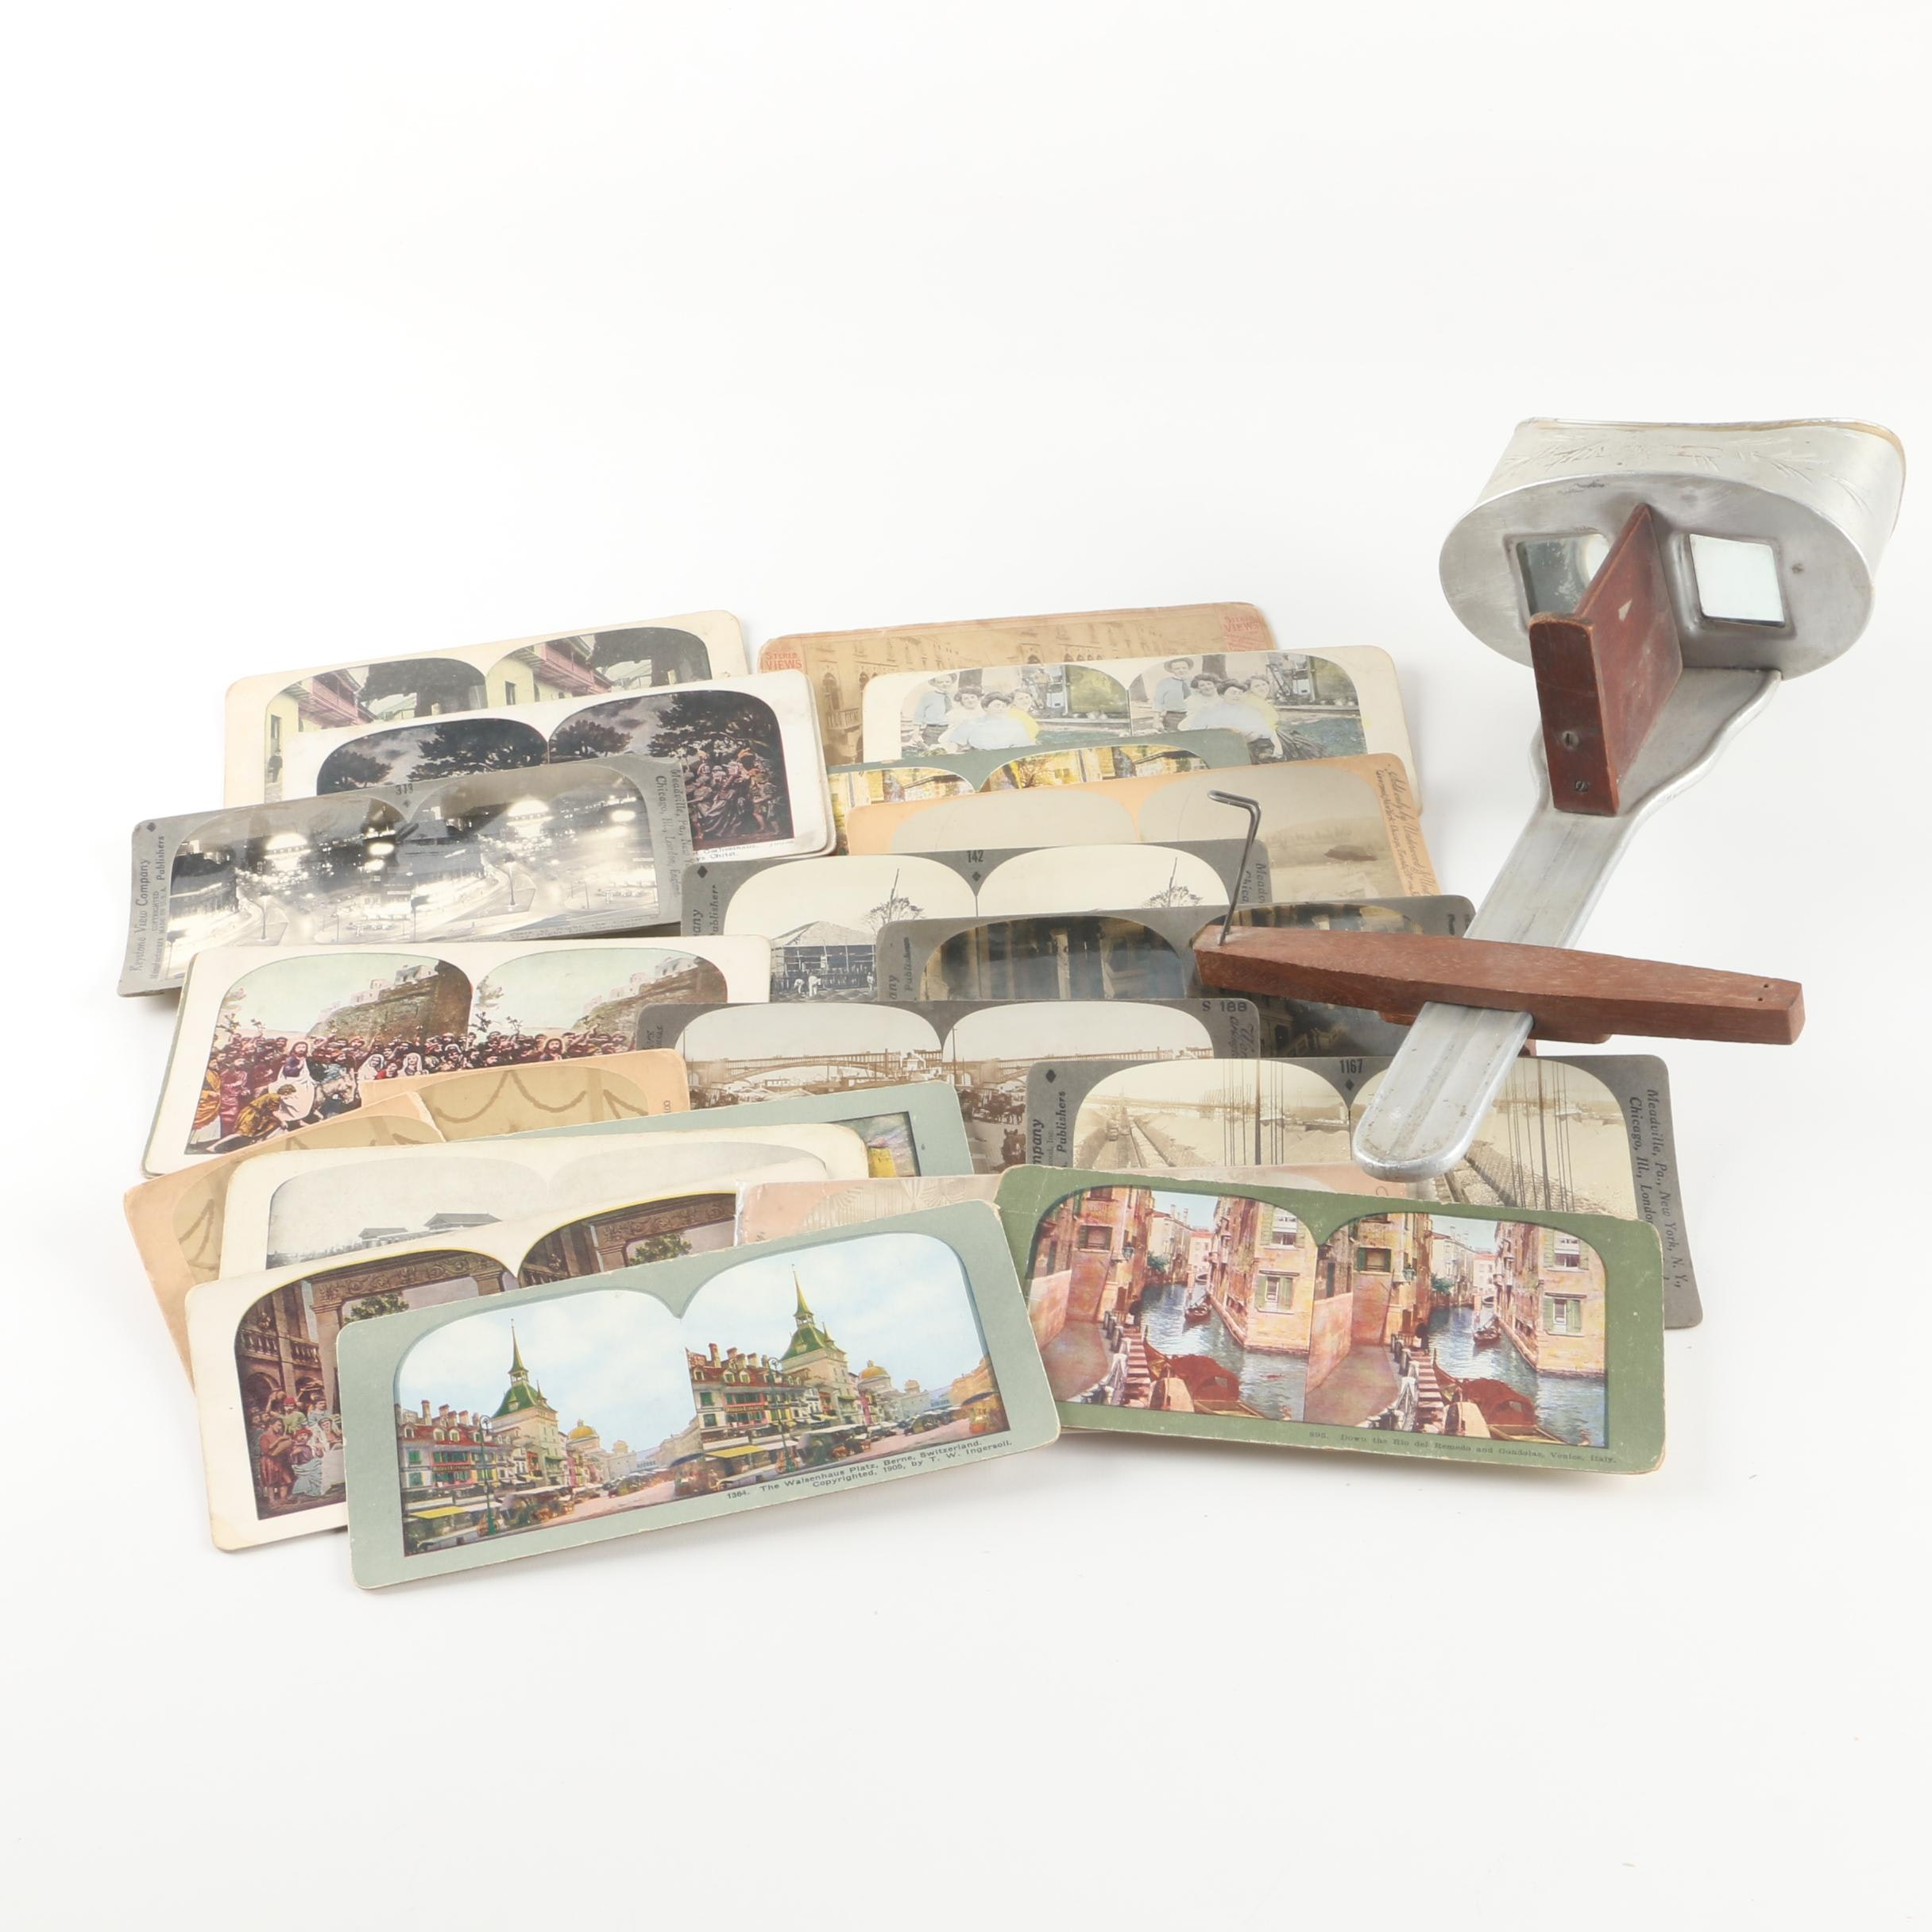 Antique Stereoscope with Slides